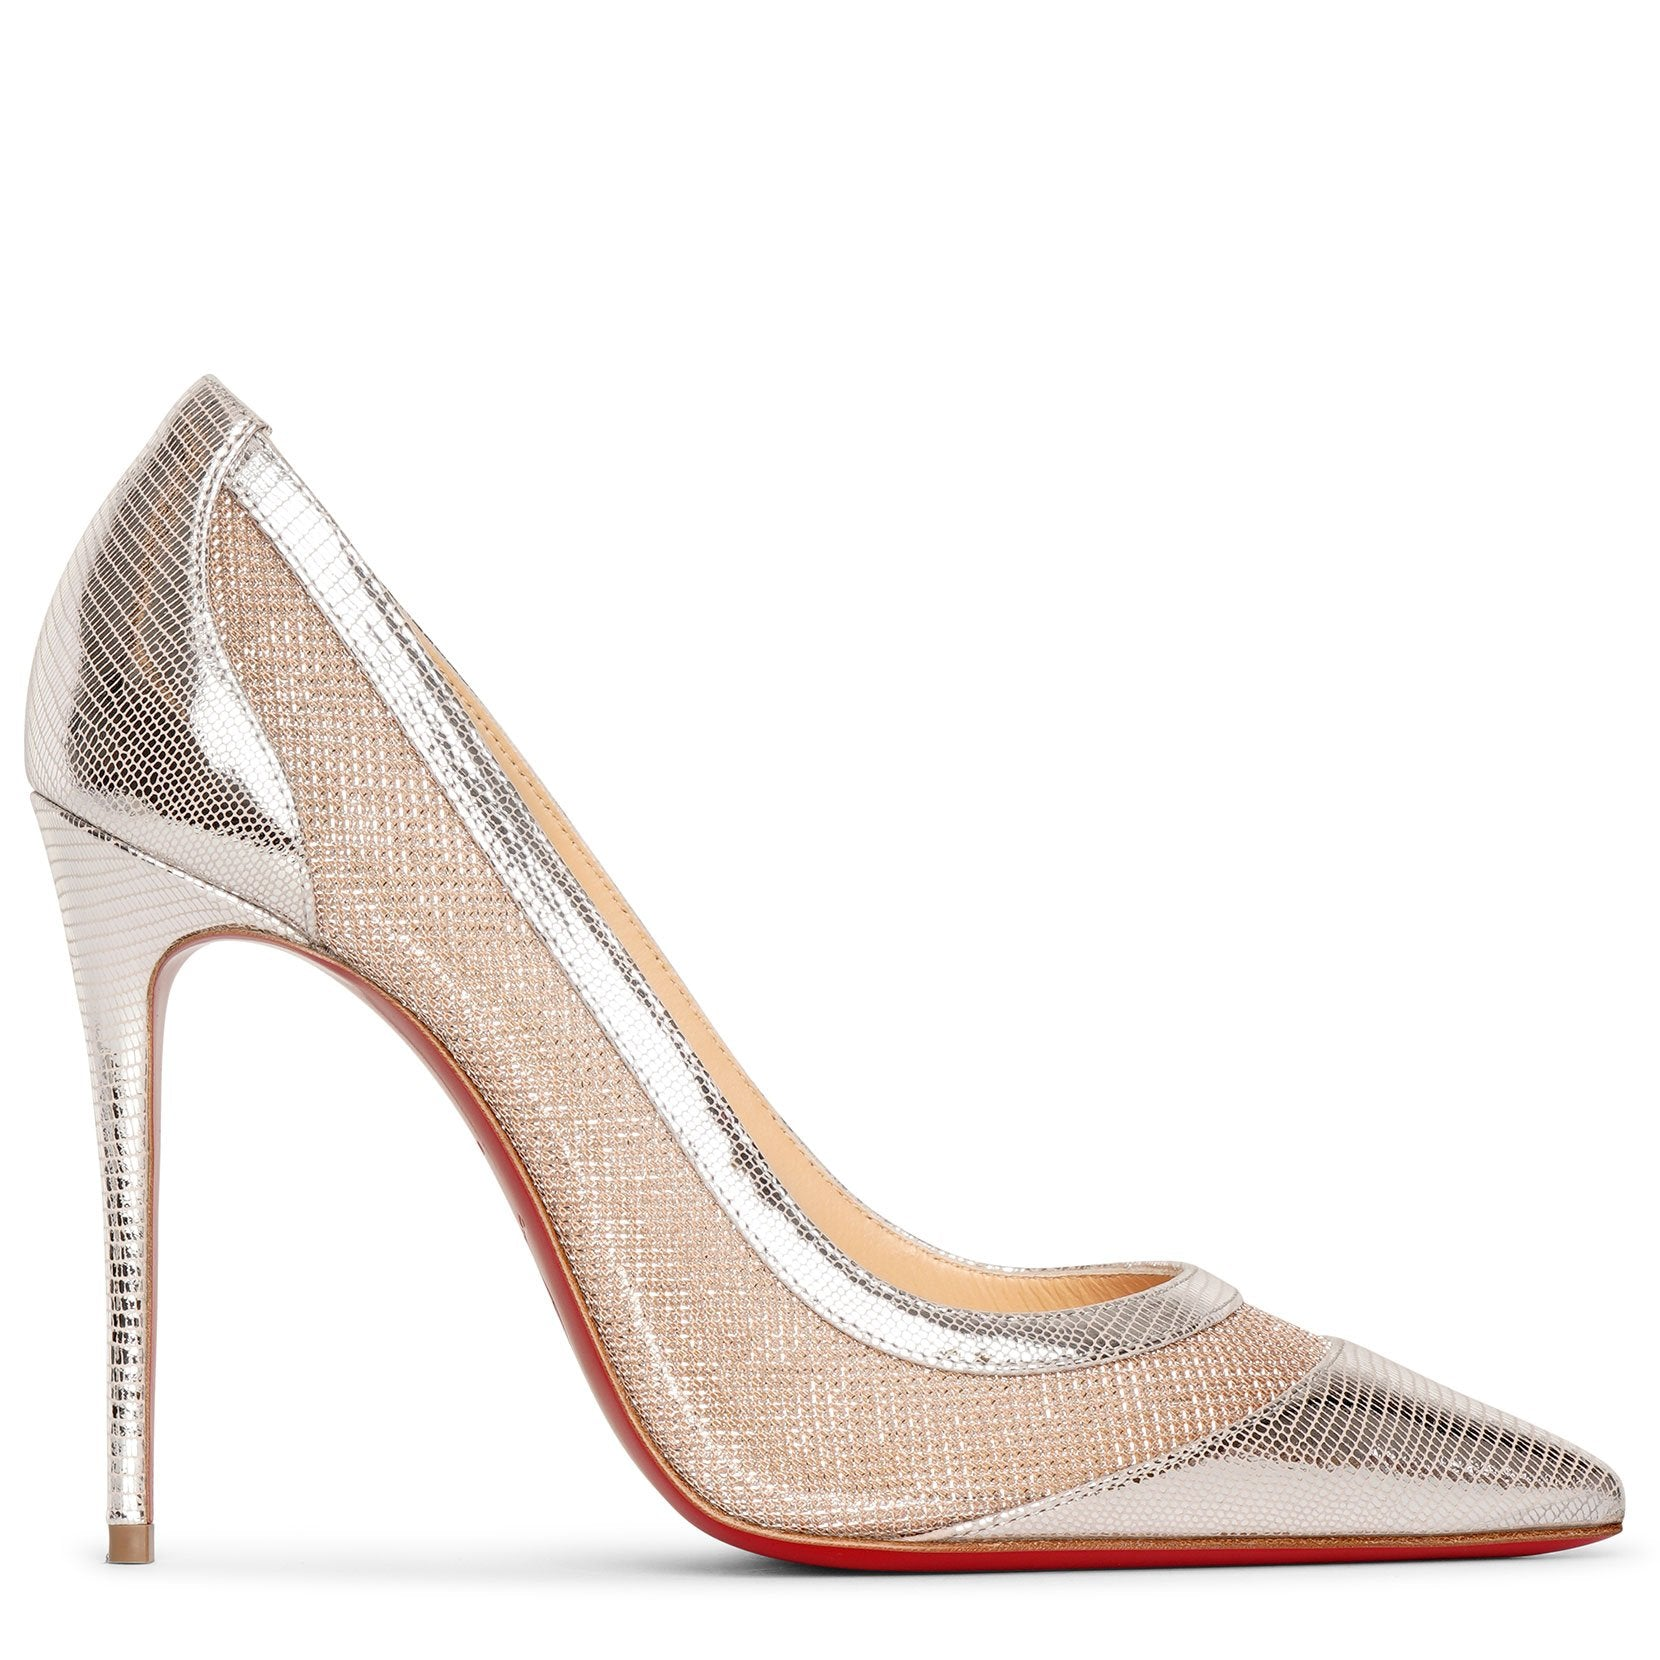 Christian Louboutin Galativi 100 metallic pumps